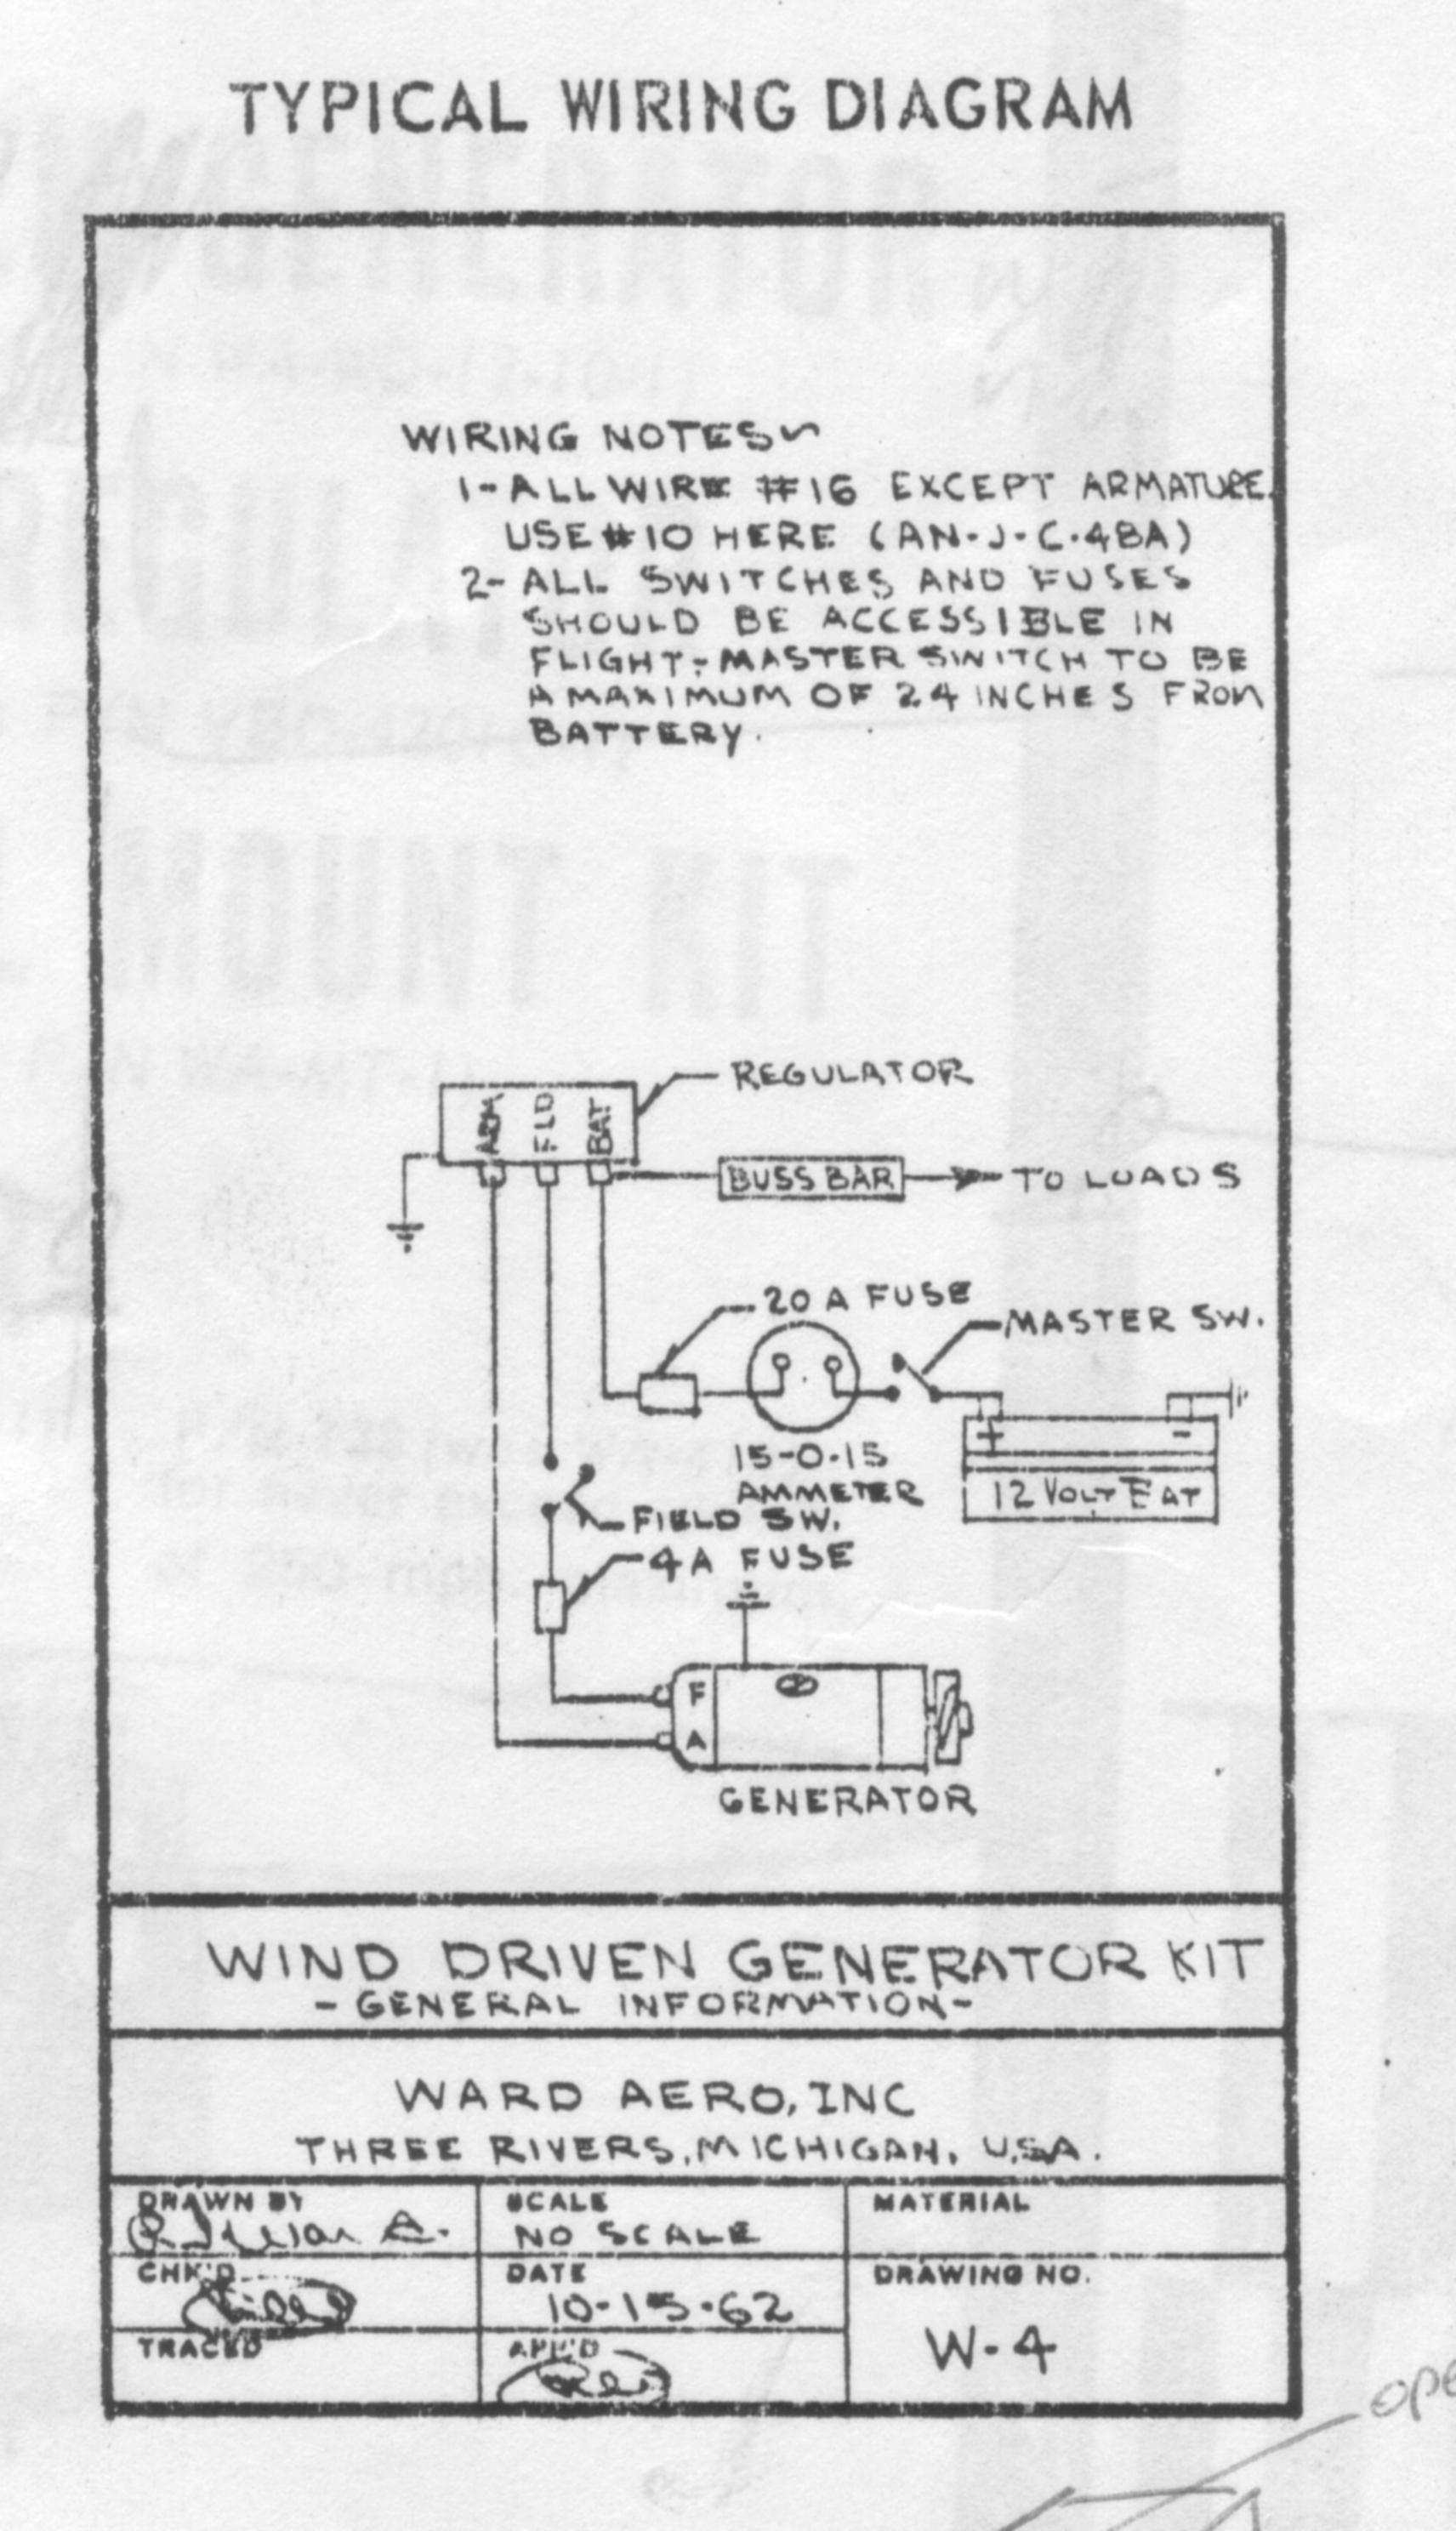 Resources For Monocoupe Restorers Exampletaylorcraftwiringdiagram Scan Of My Original Ward Aero Wind Driven Generator Manual Cover Page Faa Approval Mounting Instructions Wiring Diagram